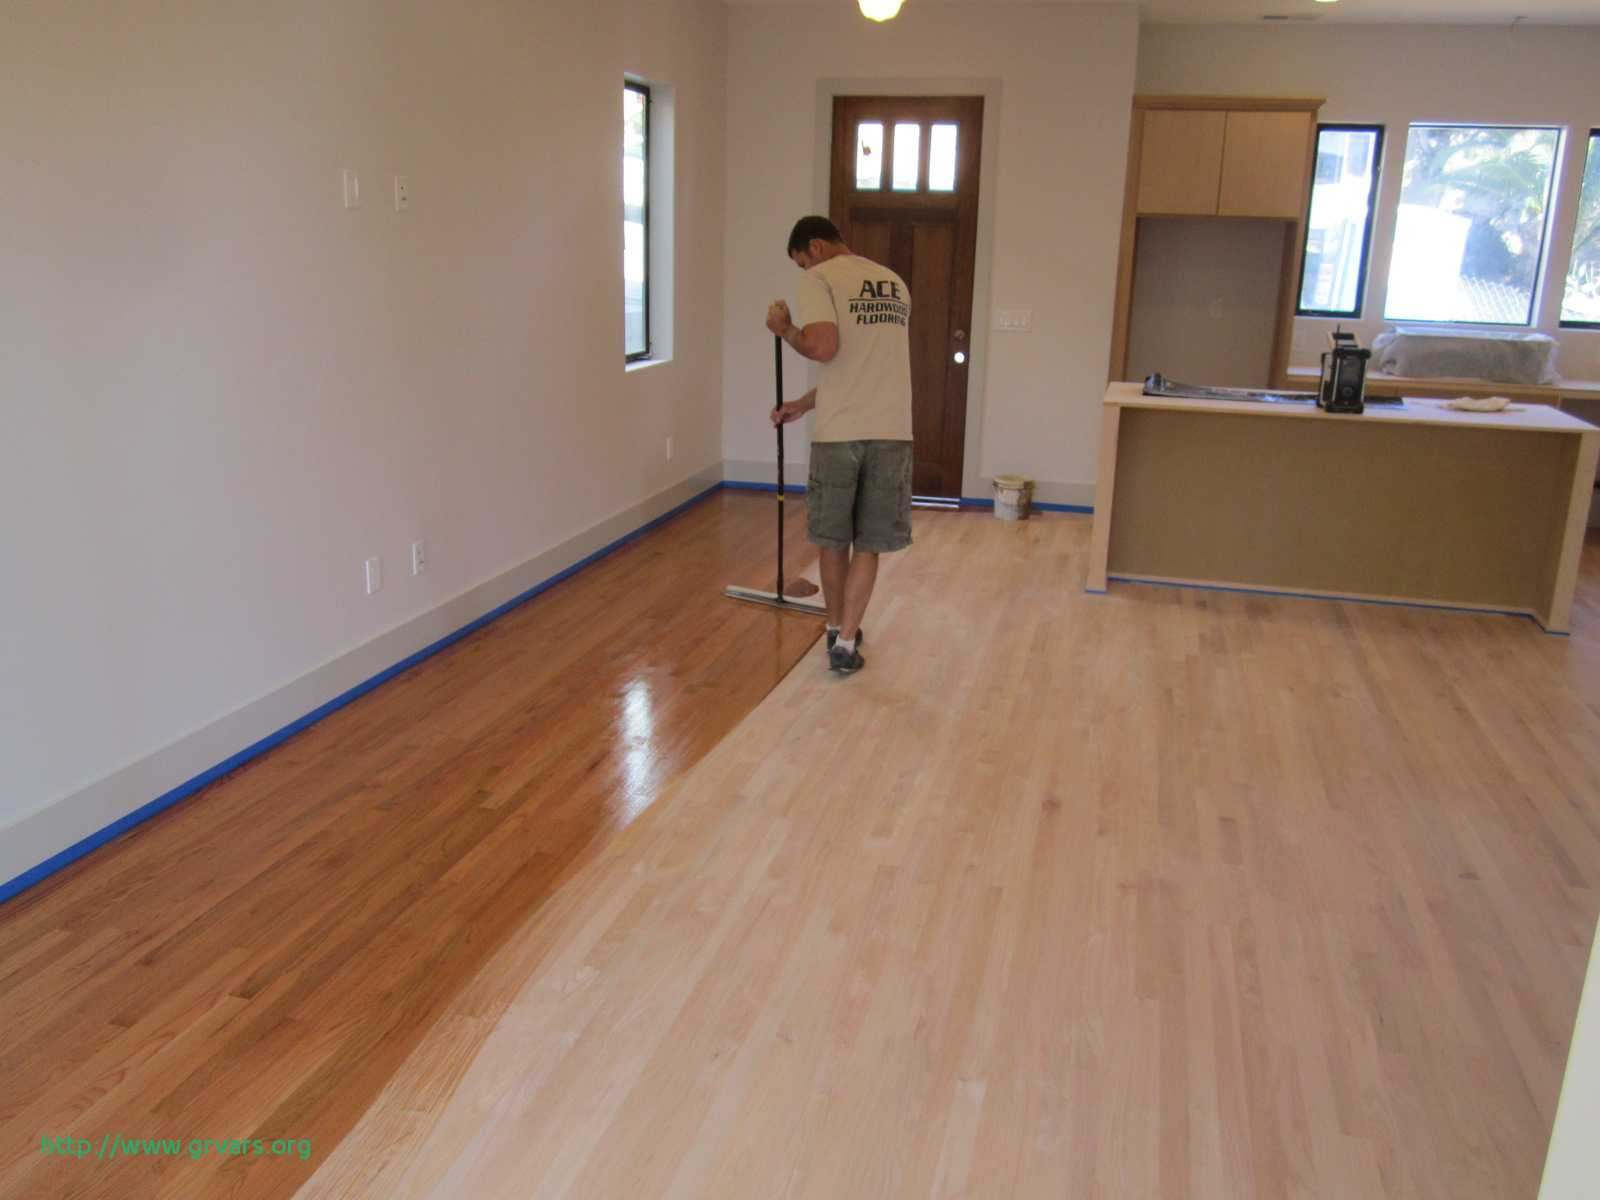 how much does it cost to refinish hardwood floors yourself of cost of restoring hardwood floors beau refinishing hardwood floors for cost of restoring hardwood floors beau refinishing hardwood floors yourself flooring vs replacing refinish